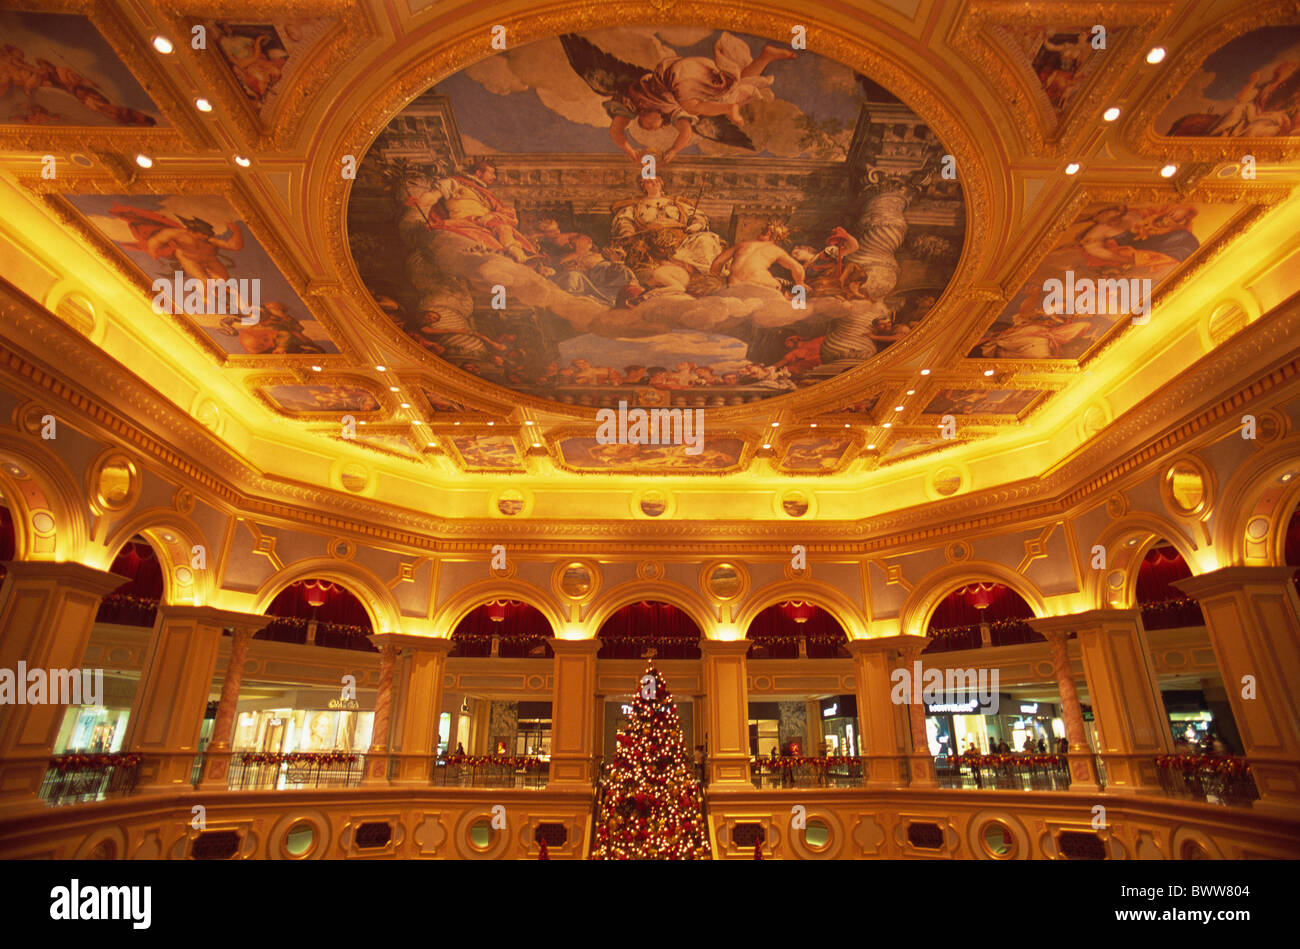 Asia China Asia Macau city Venetian Venetian Macao Venetian Hotel and casino gambling Casinos Hotel Hotels - Stock Image